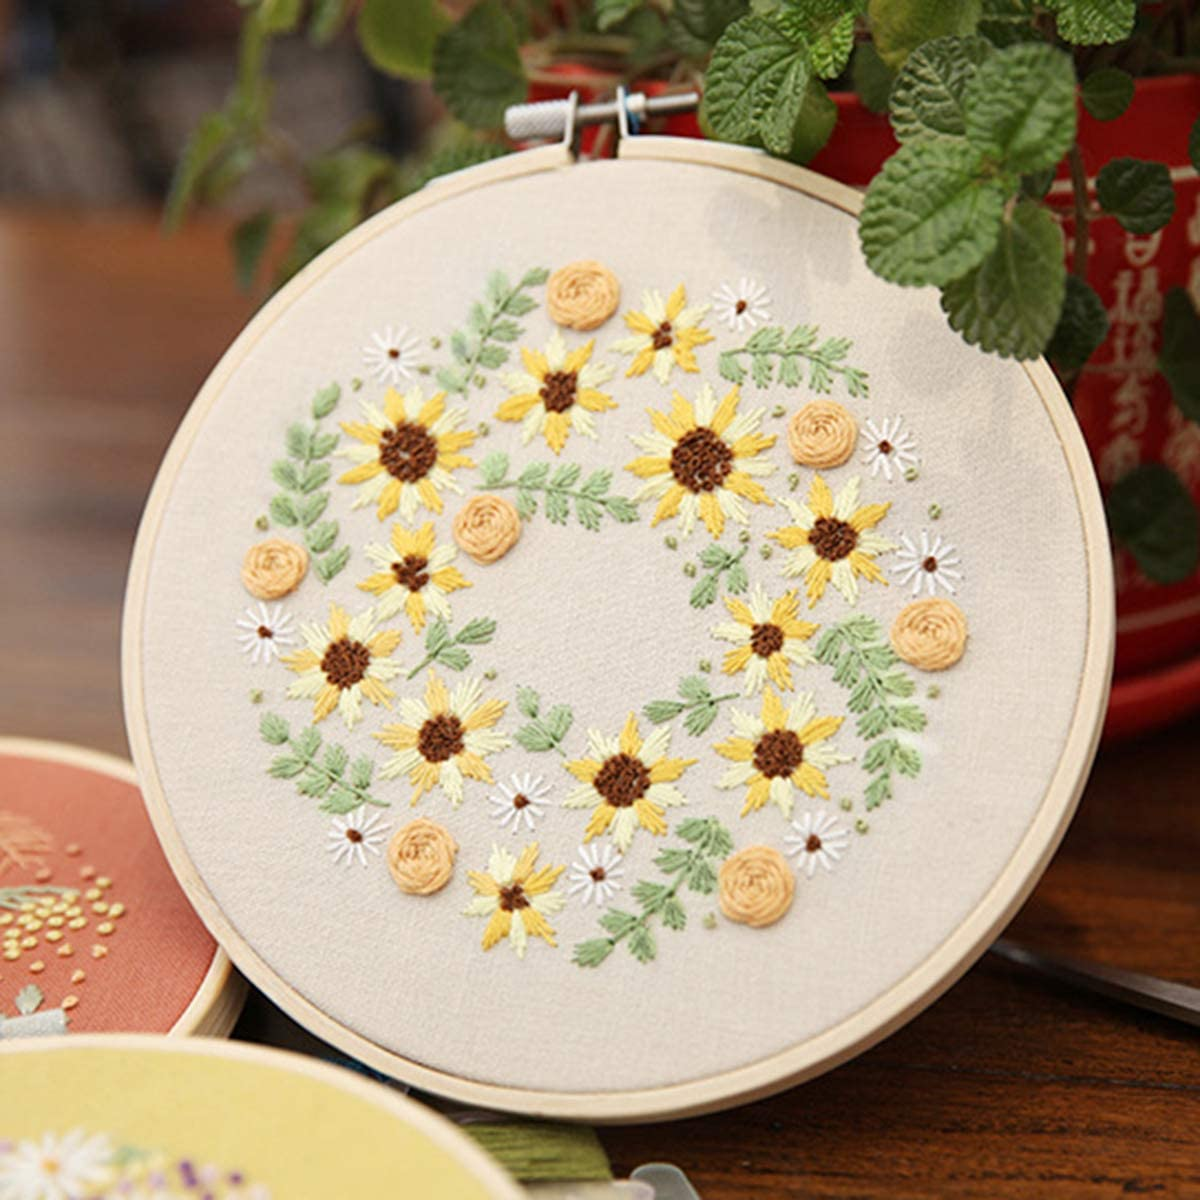 Bamboo Hook SunshineFace 2Pcs of Embroidery Starter Kit Floral Cross Stitch Kit for Beginners Adults Kids Patterned Embroidery Cloth Tools